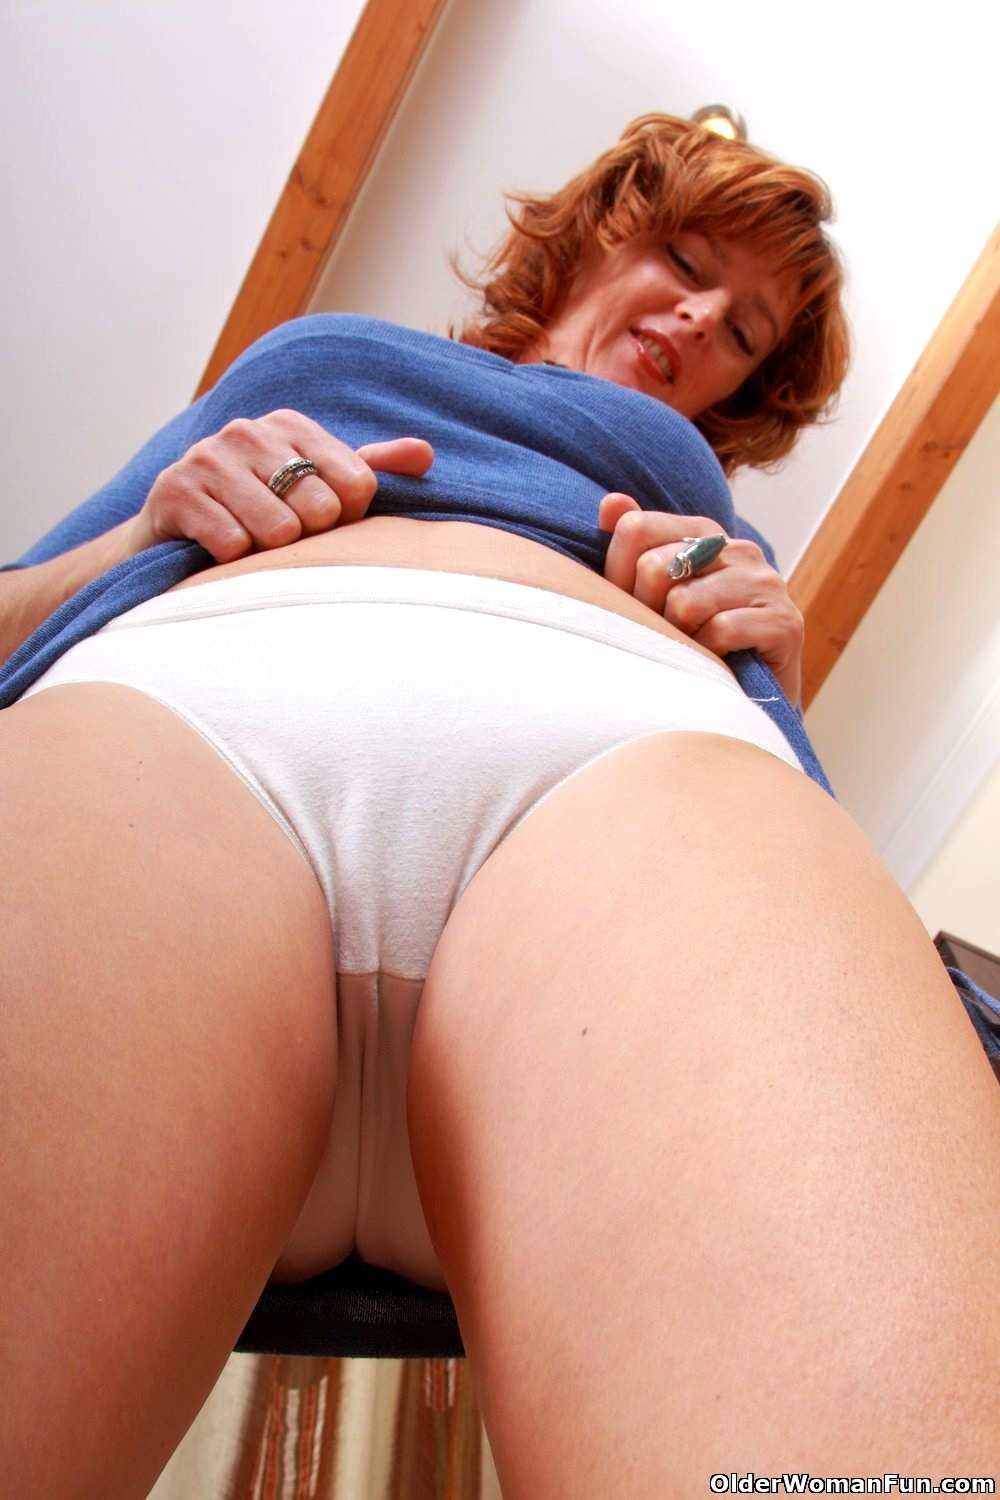 Babe Today Older Woman Fun Olderwomanfun Model Sex Wife Hd -3835